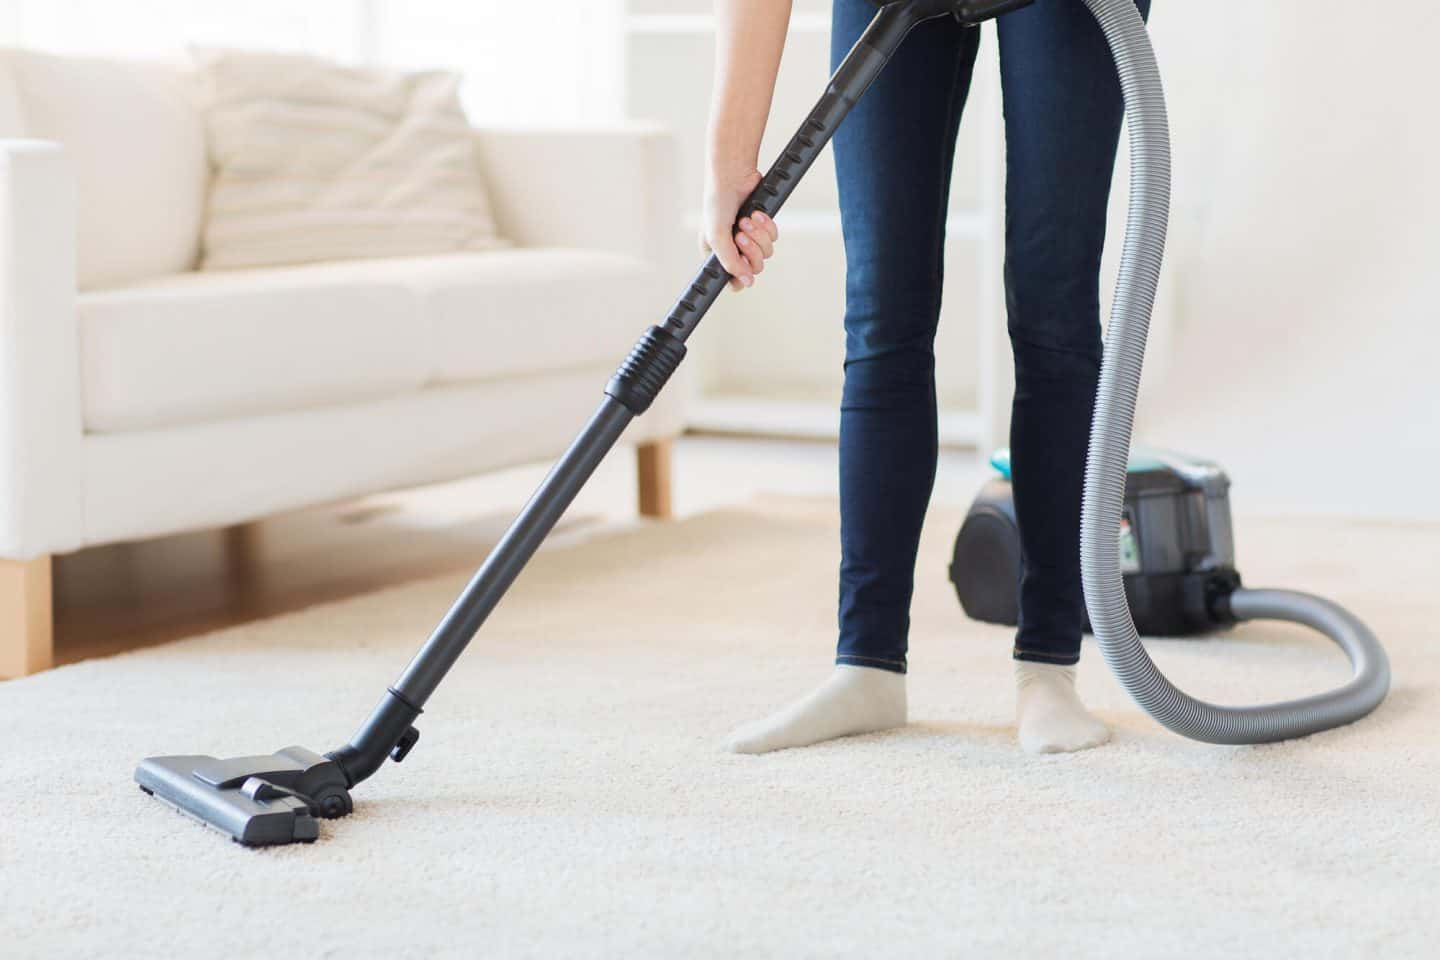 Carpet Cleaning Tips to Help Your Carpets Look Great